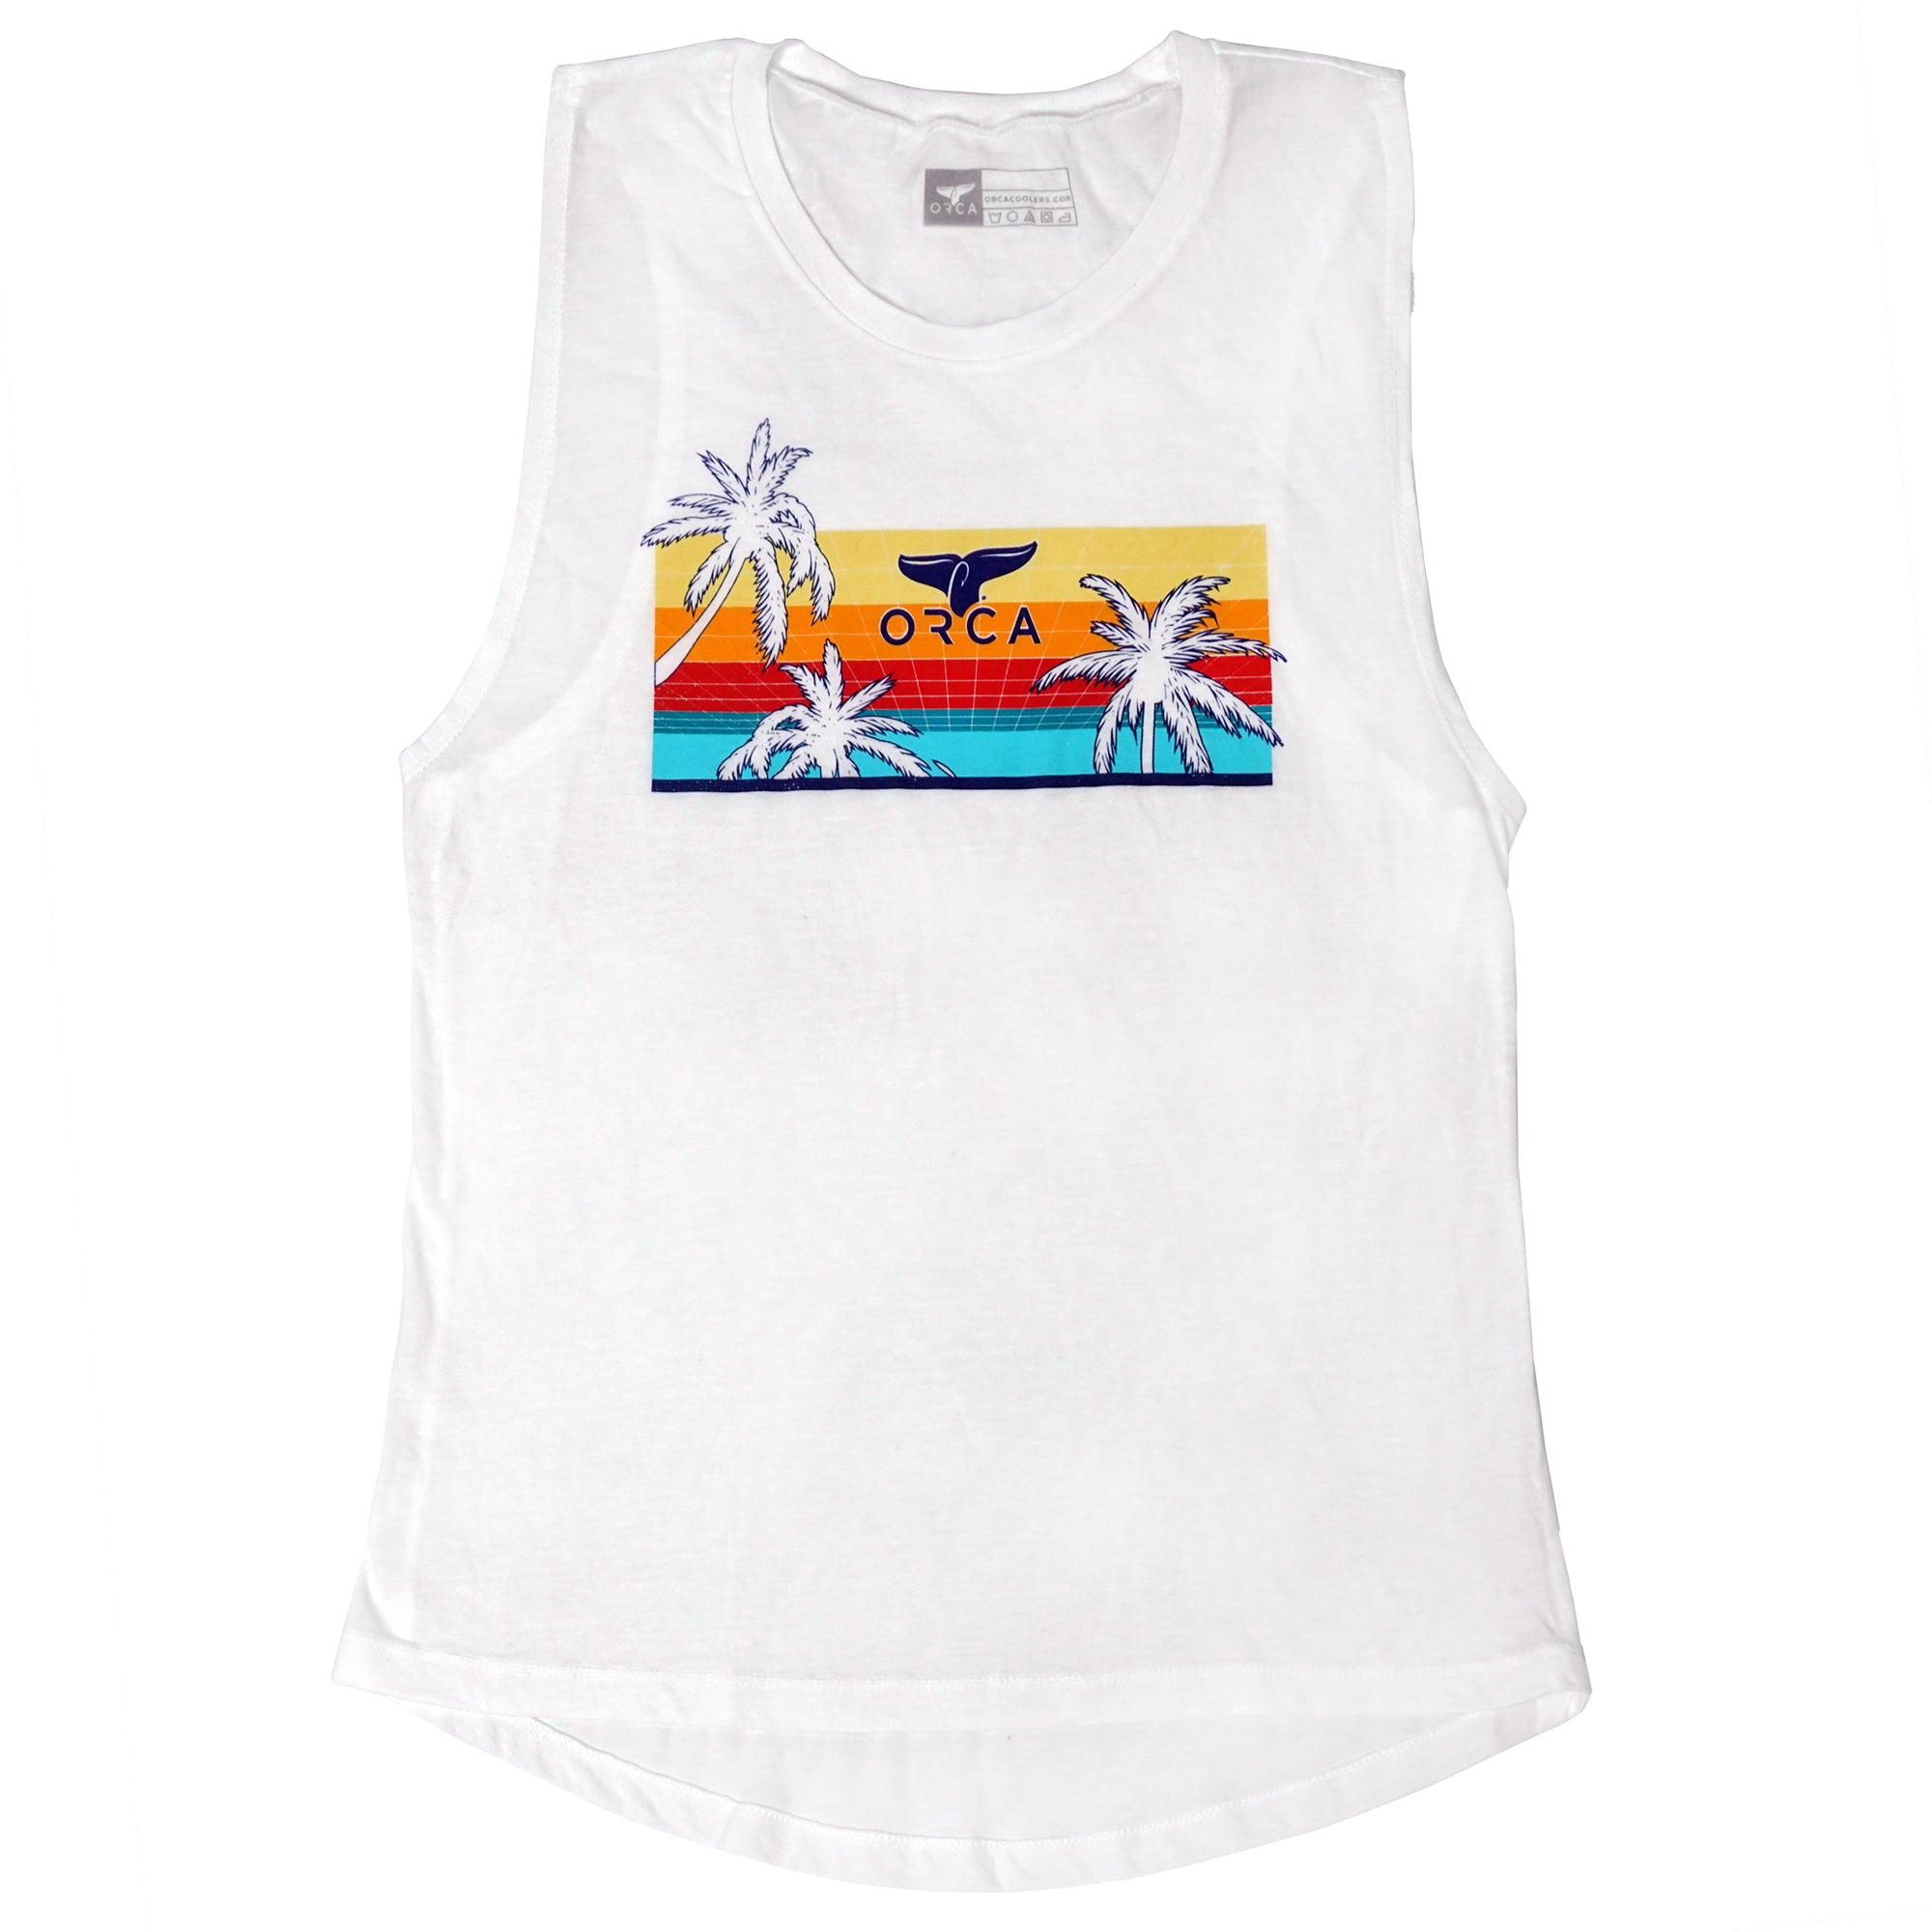 80's Palm White Muscle Tank